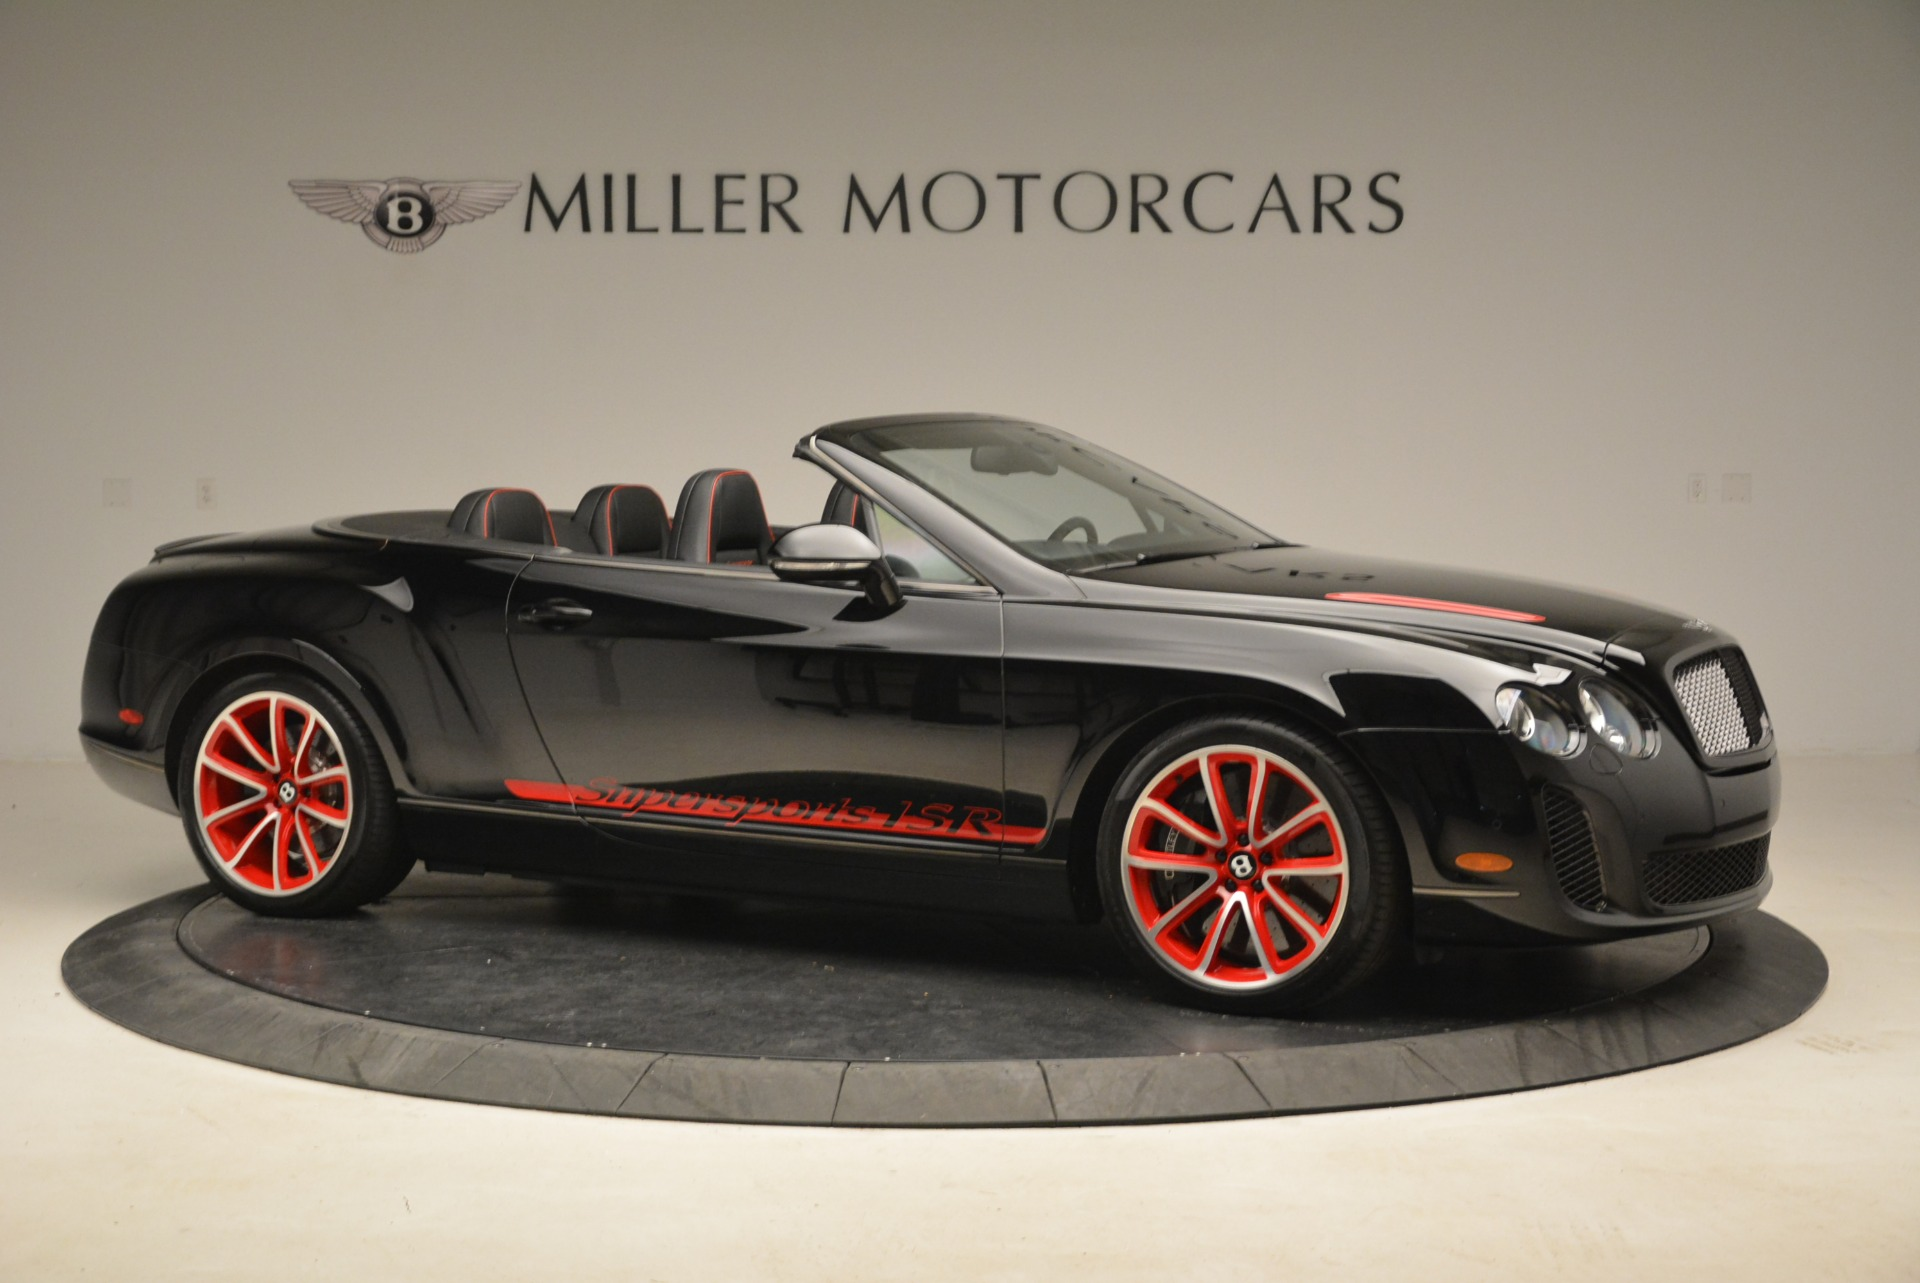 Used 2013 Bentley Continental GT Supersports Convertible ISR For Sale In Westport, CT 2151_p10